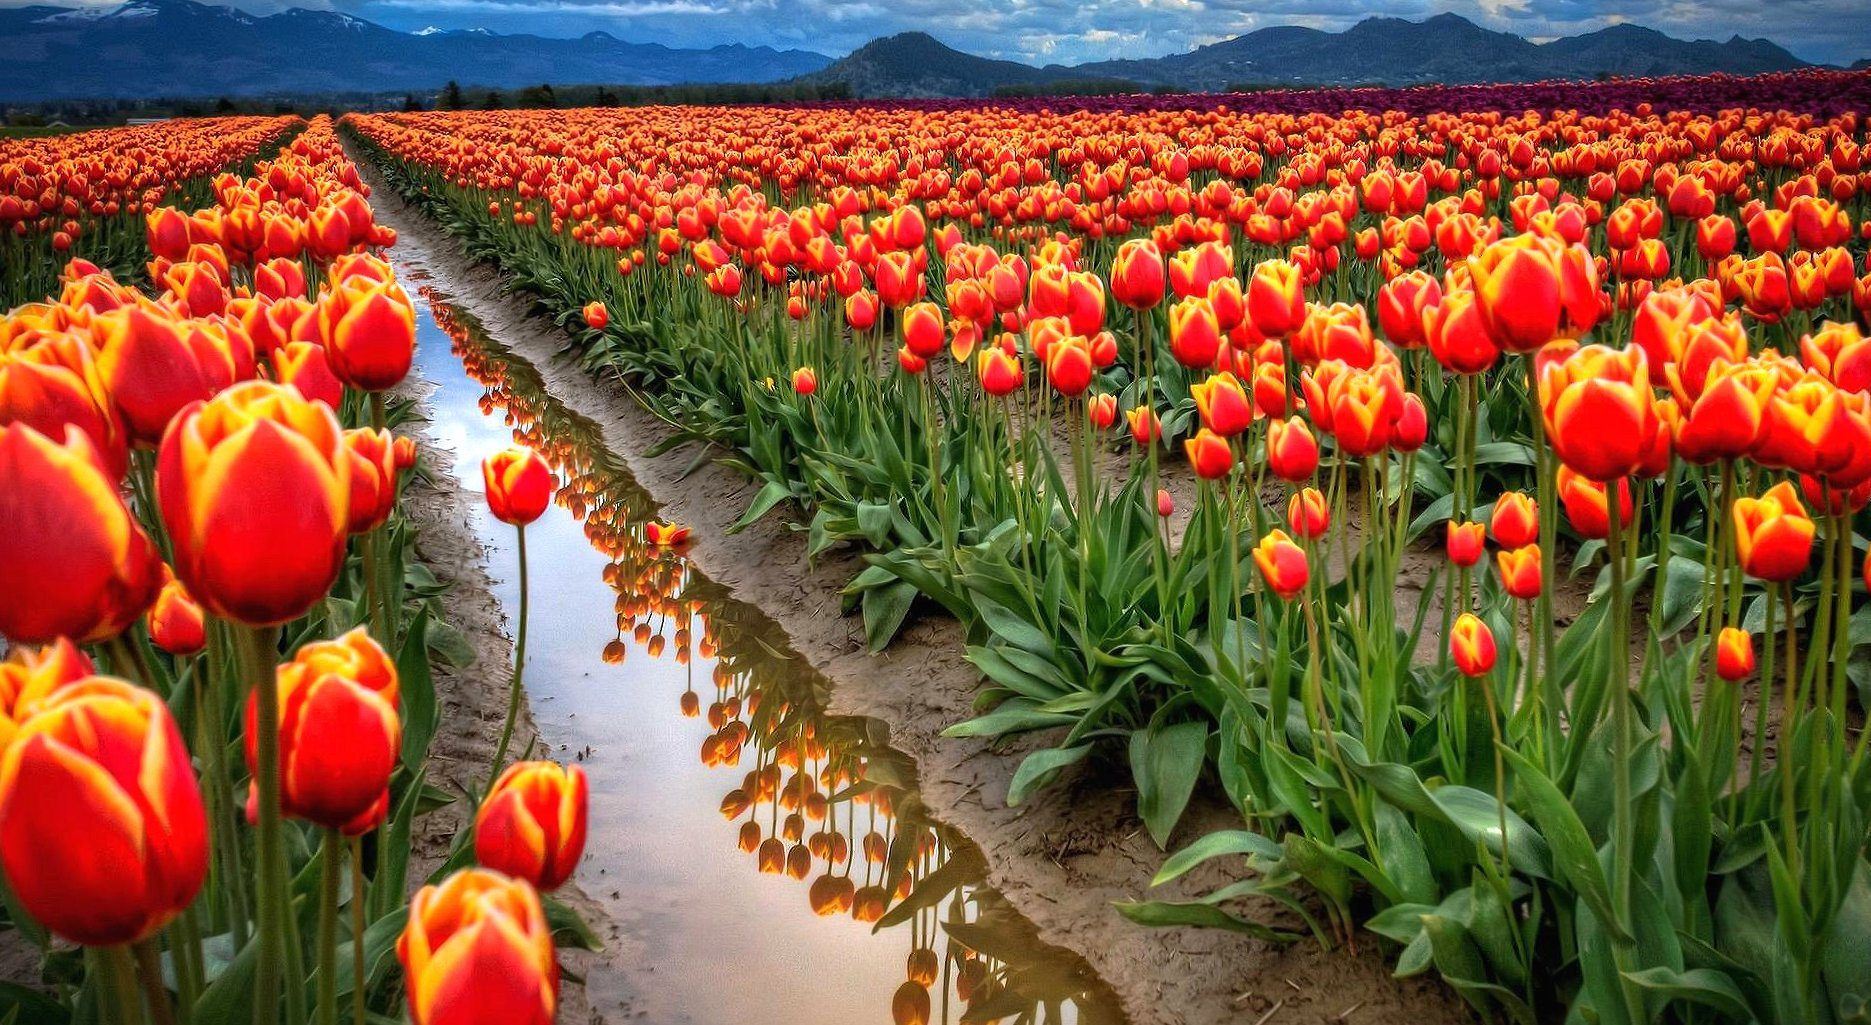 Amazing tulips field wallpapers HD quality